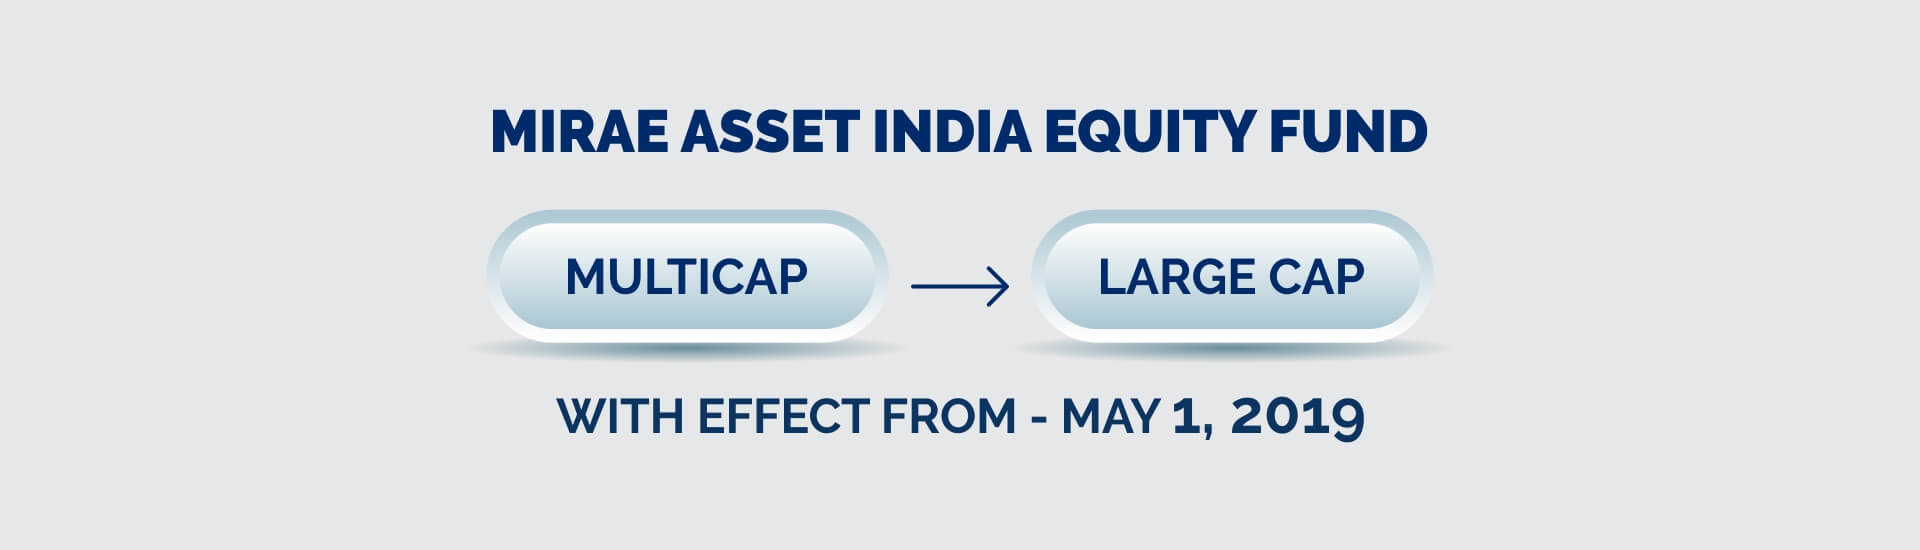 Category Change for Mirae Asset Equity India Fund